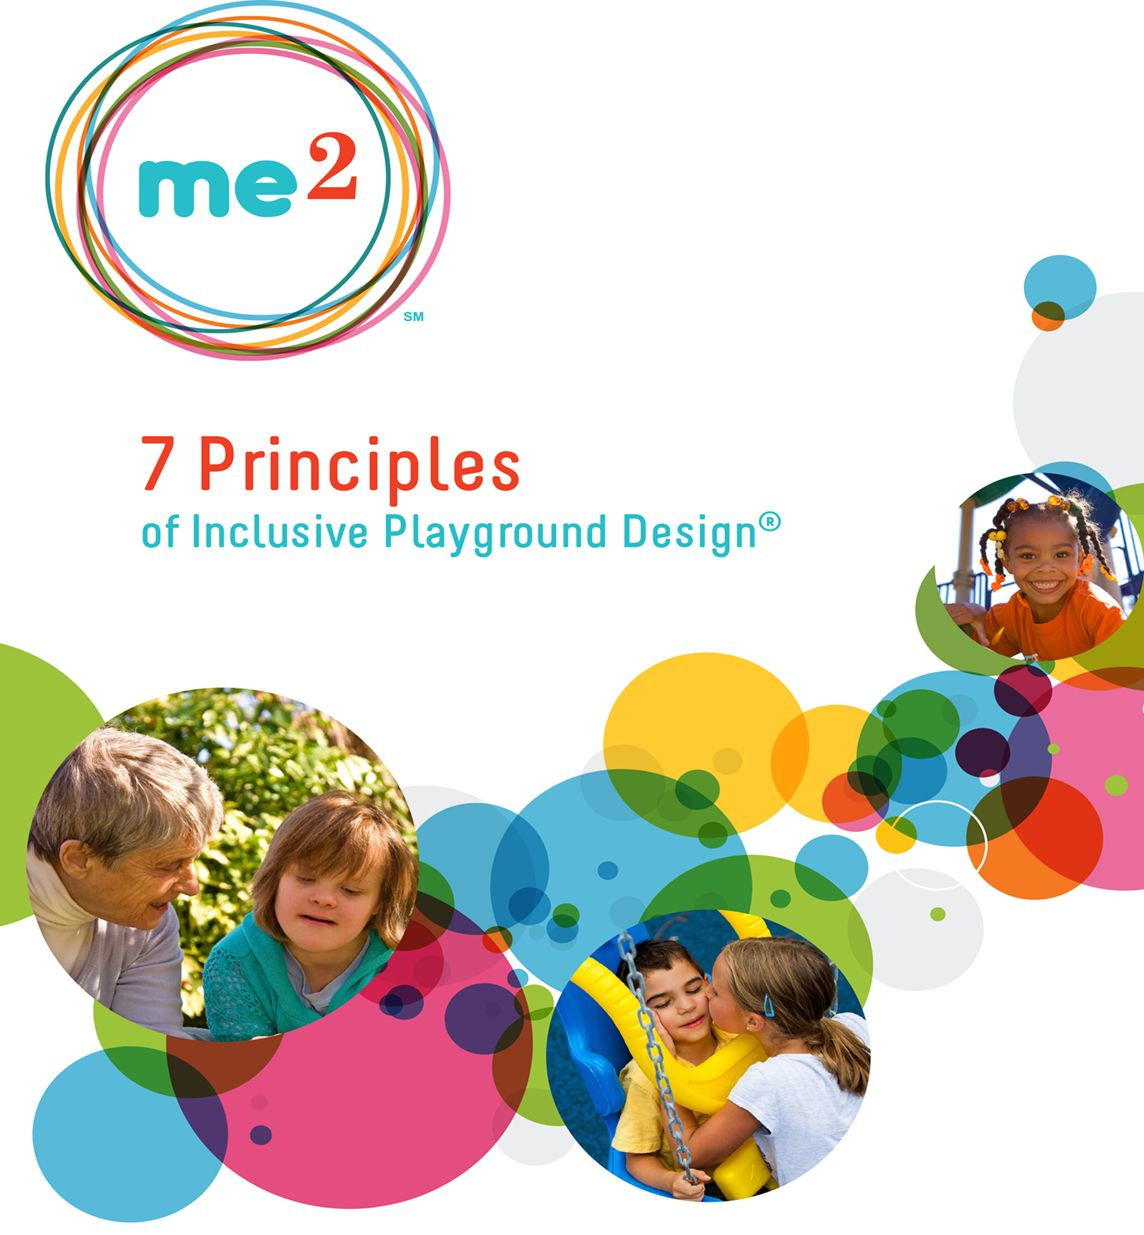 me2 7 Principles of Inclusive Playground Design Guidebook